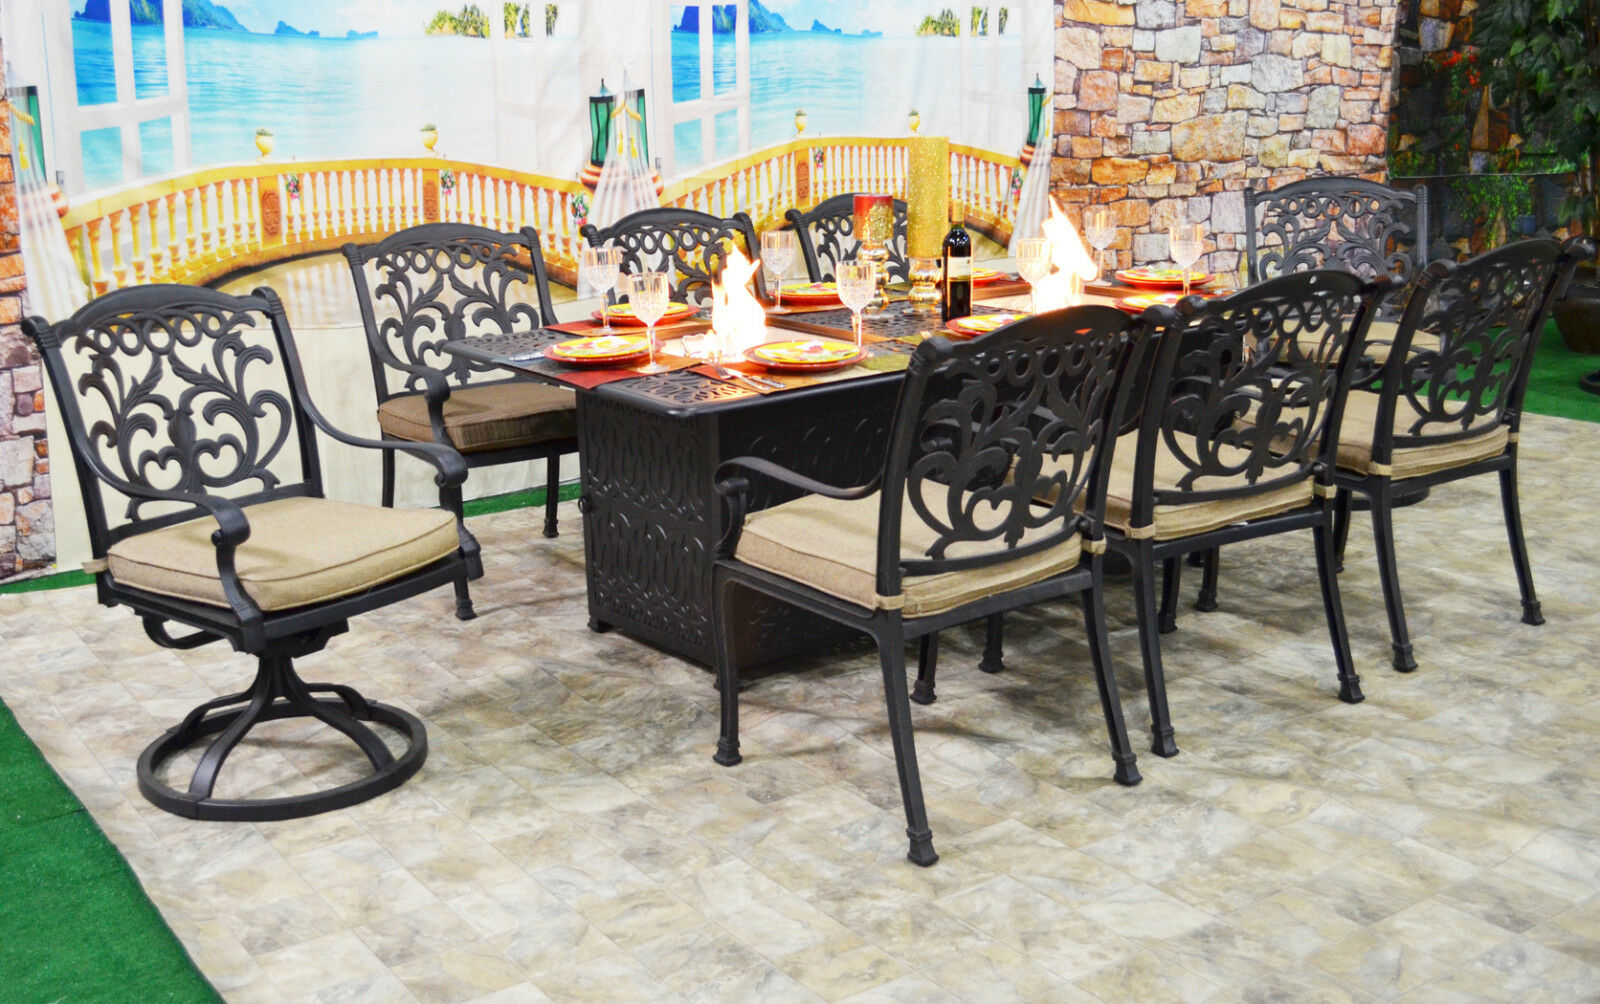 Patio Dining Table With Built In Fire Pit 9 Piece Set Outdoor Furniture For Sale Online